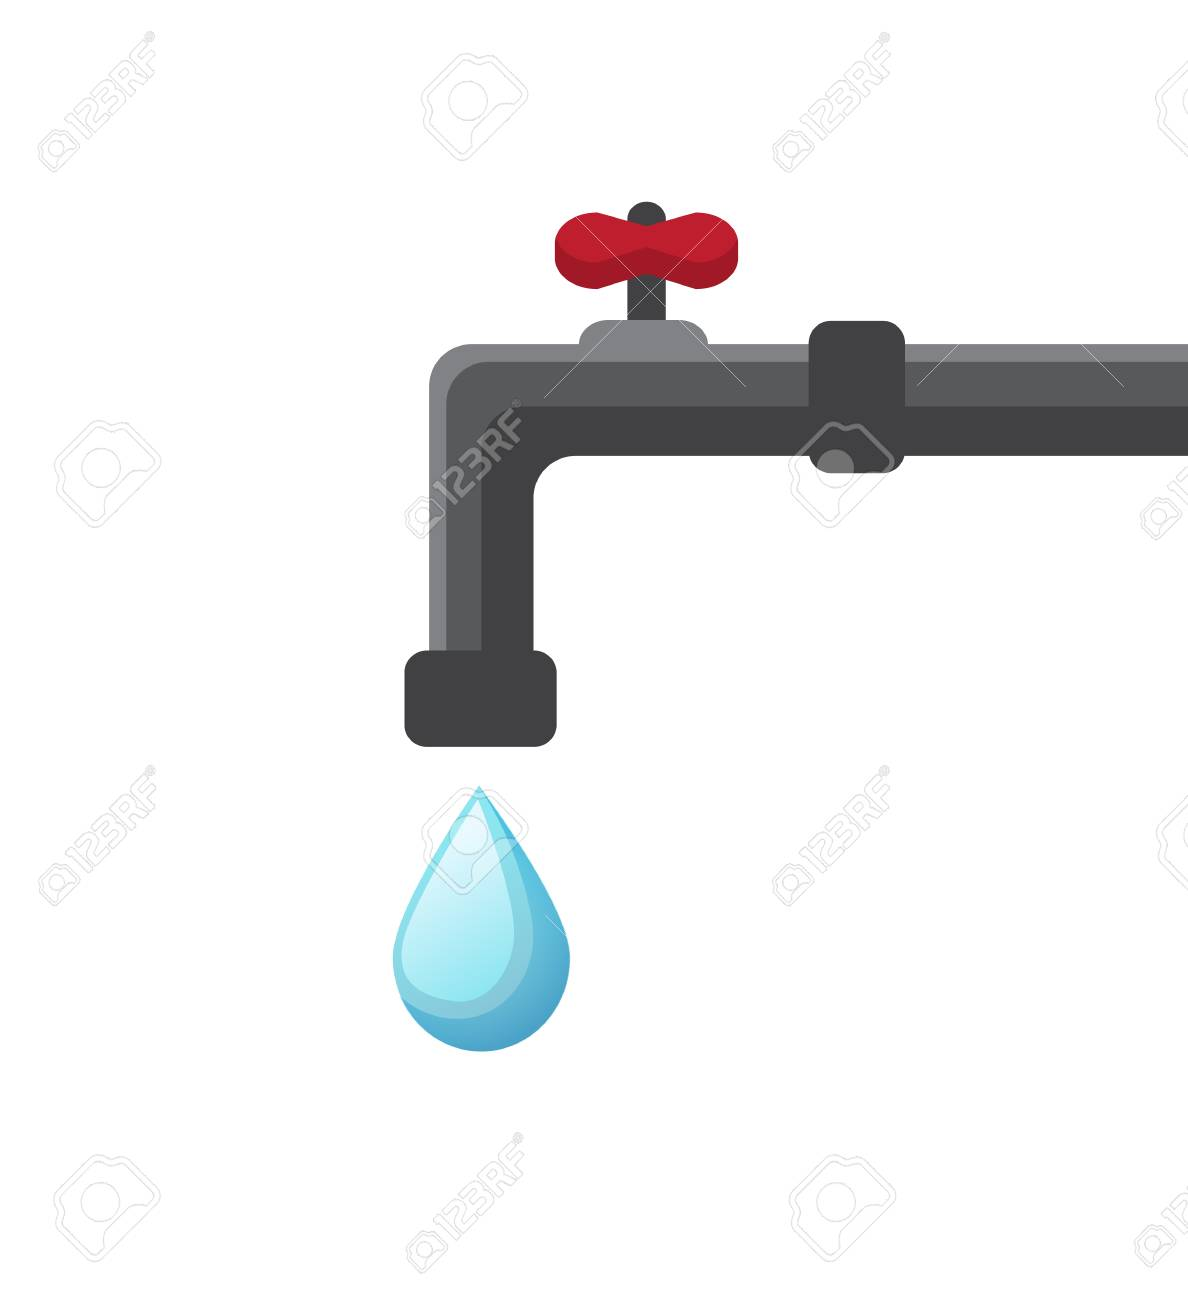 Metal Faucet With A Red Valve And A Drop Of Water Falls From ...